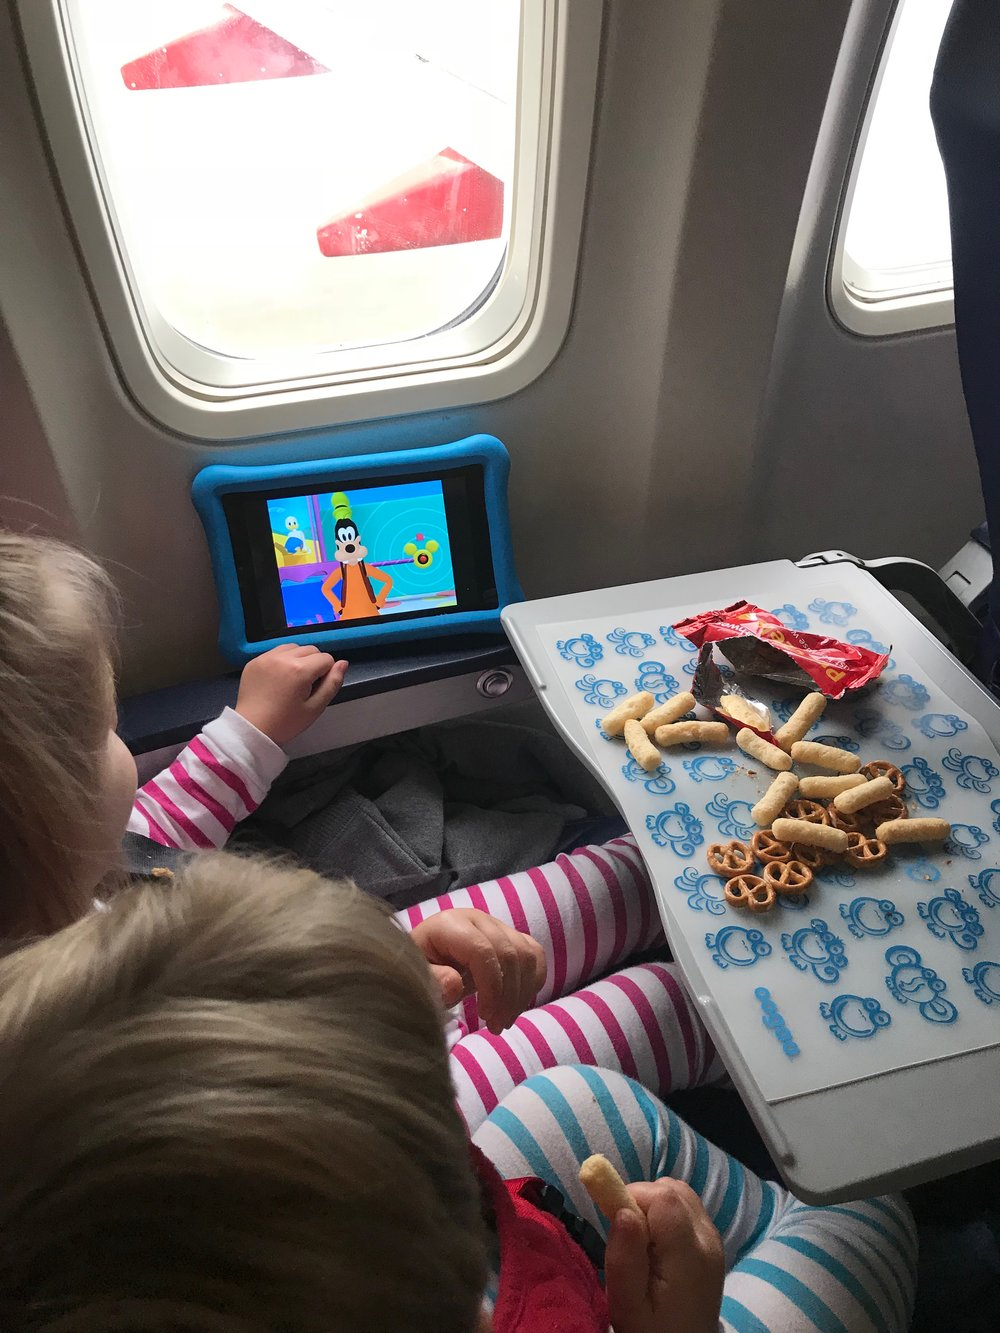 The Kids watching their Kindle on a flight